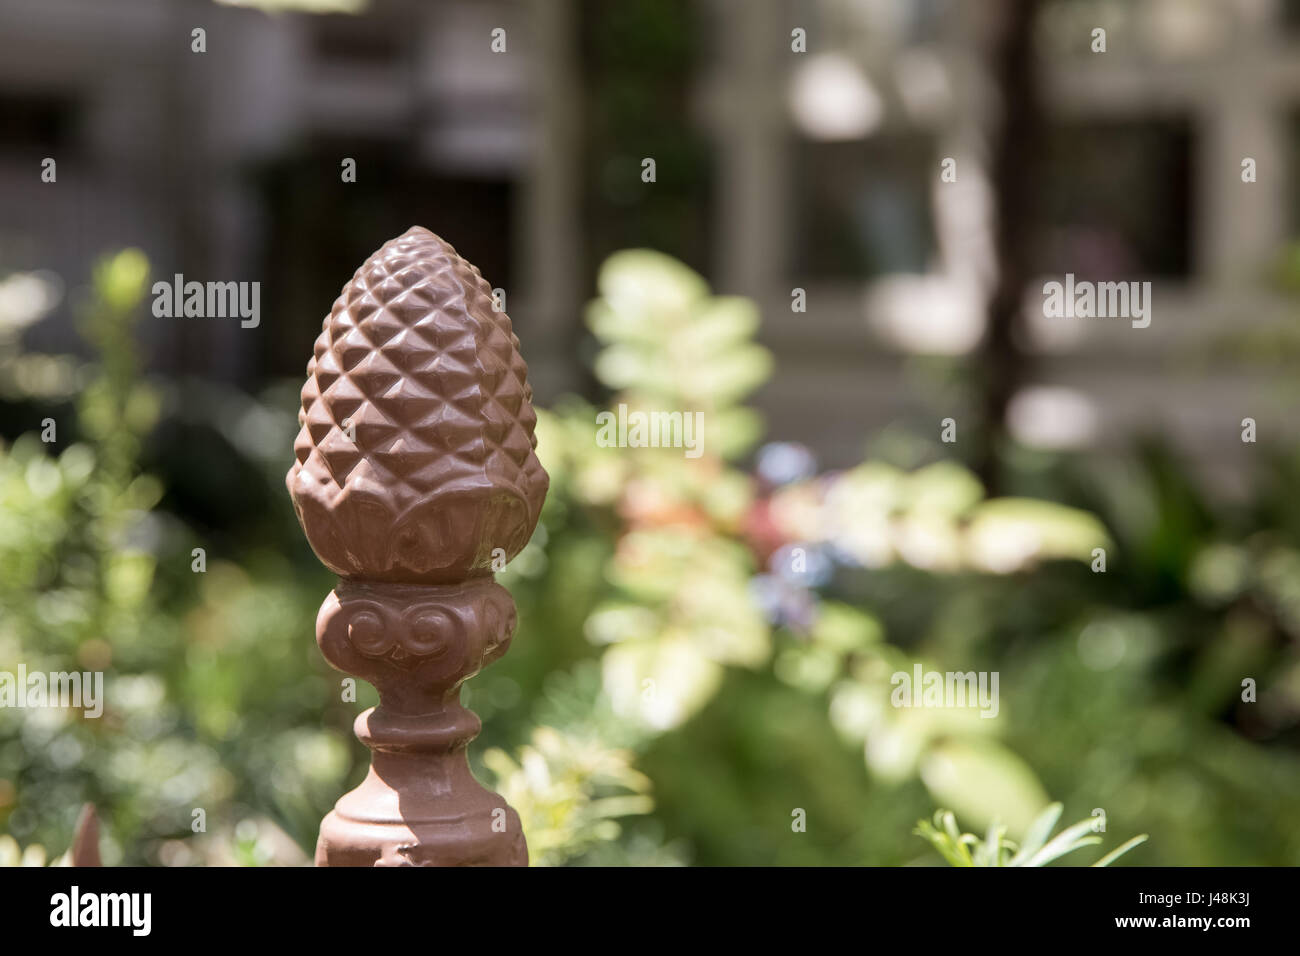 Pineapple fence post in an outdoor garden, which is symbolic of hospitality in the US.  Selective focus on the pineapple. - Stock Image